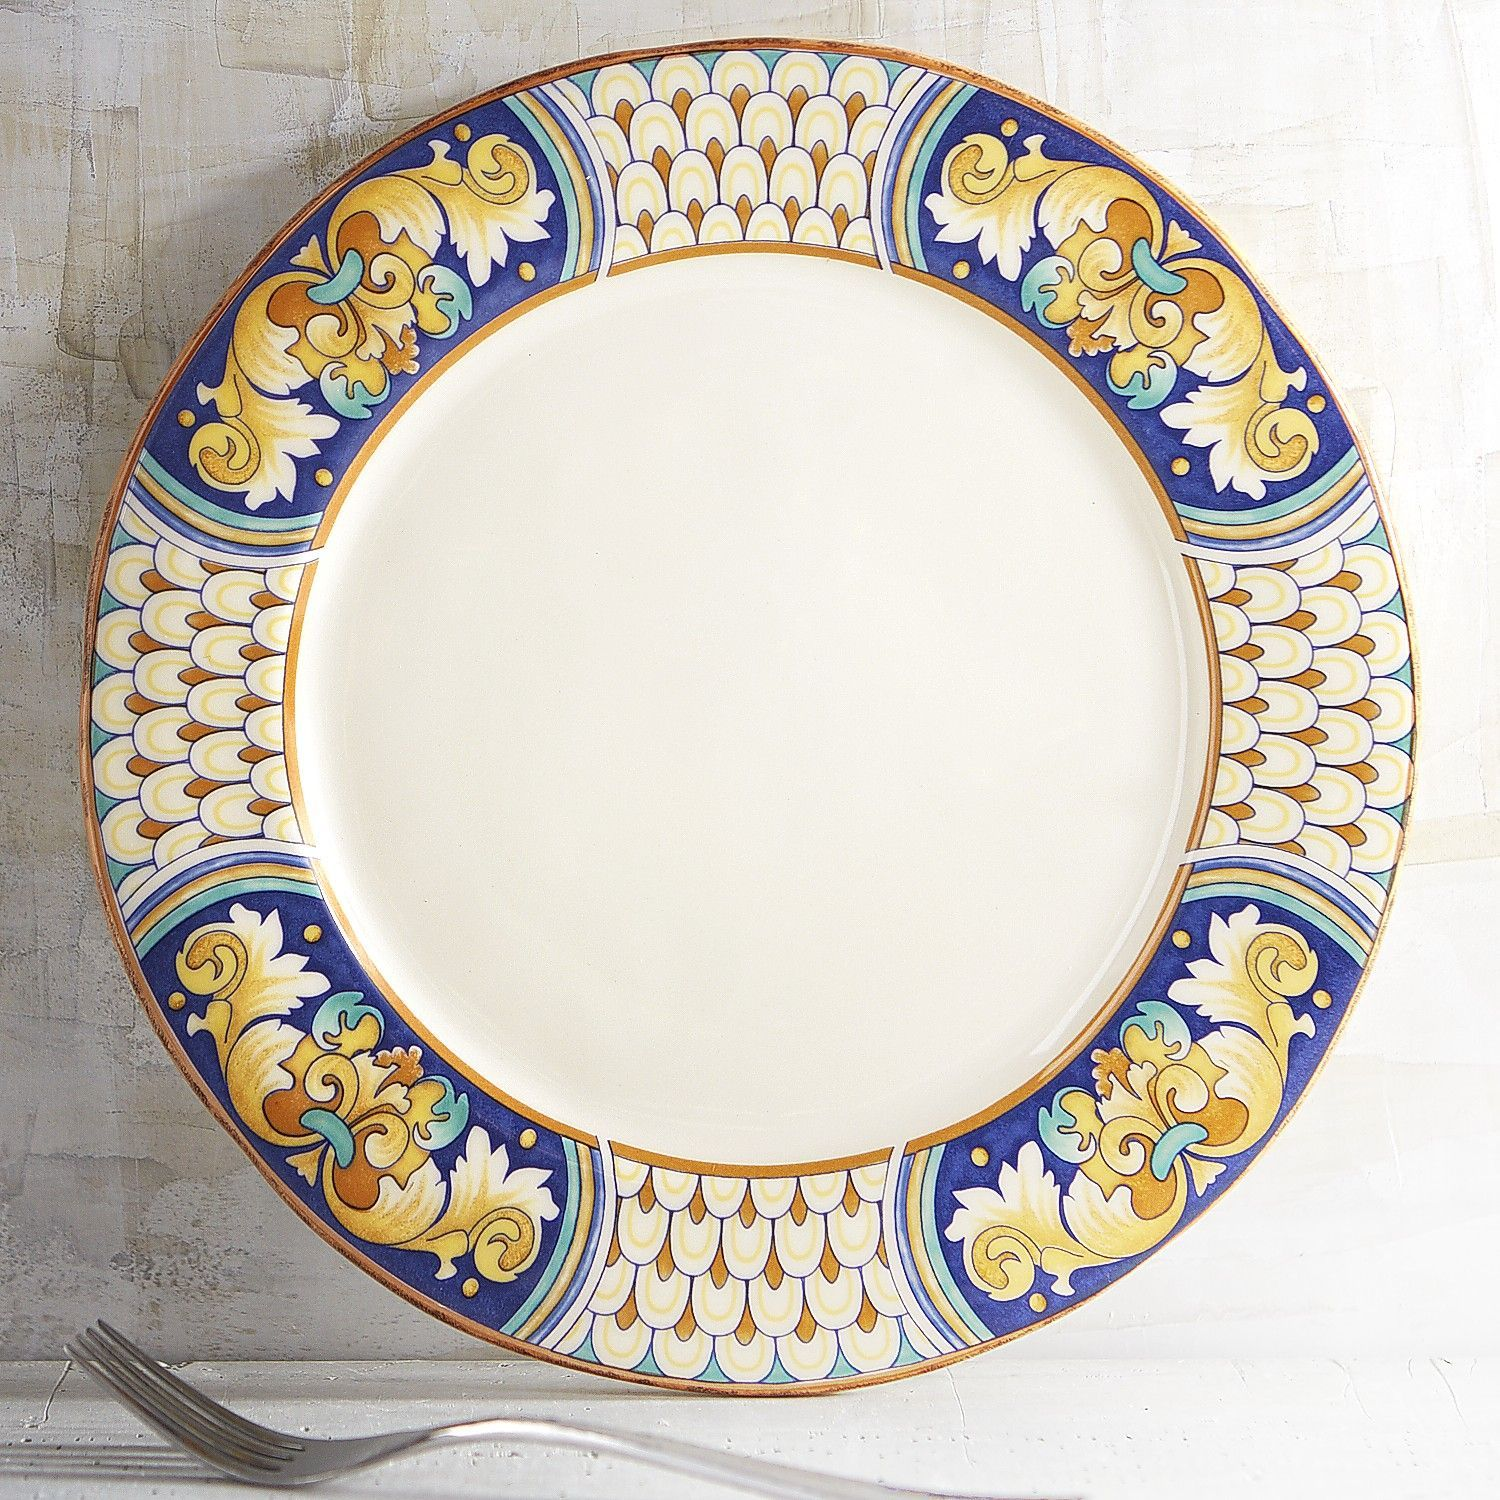 Siena Italian-Made Dinnerware  sc 1 st  Pinterest & Siena Italian-Made Dinnerware | Siena and Products